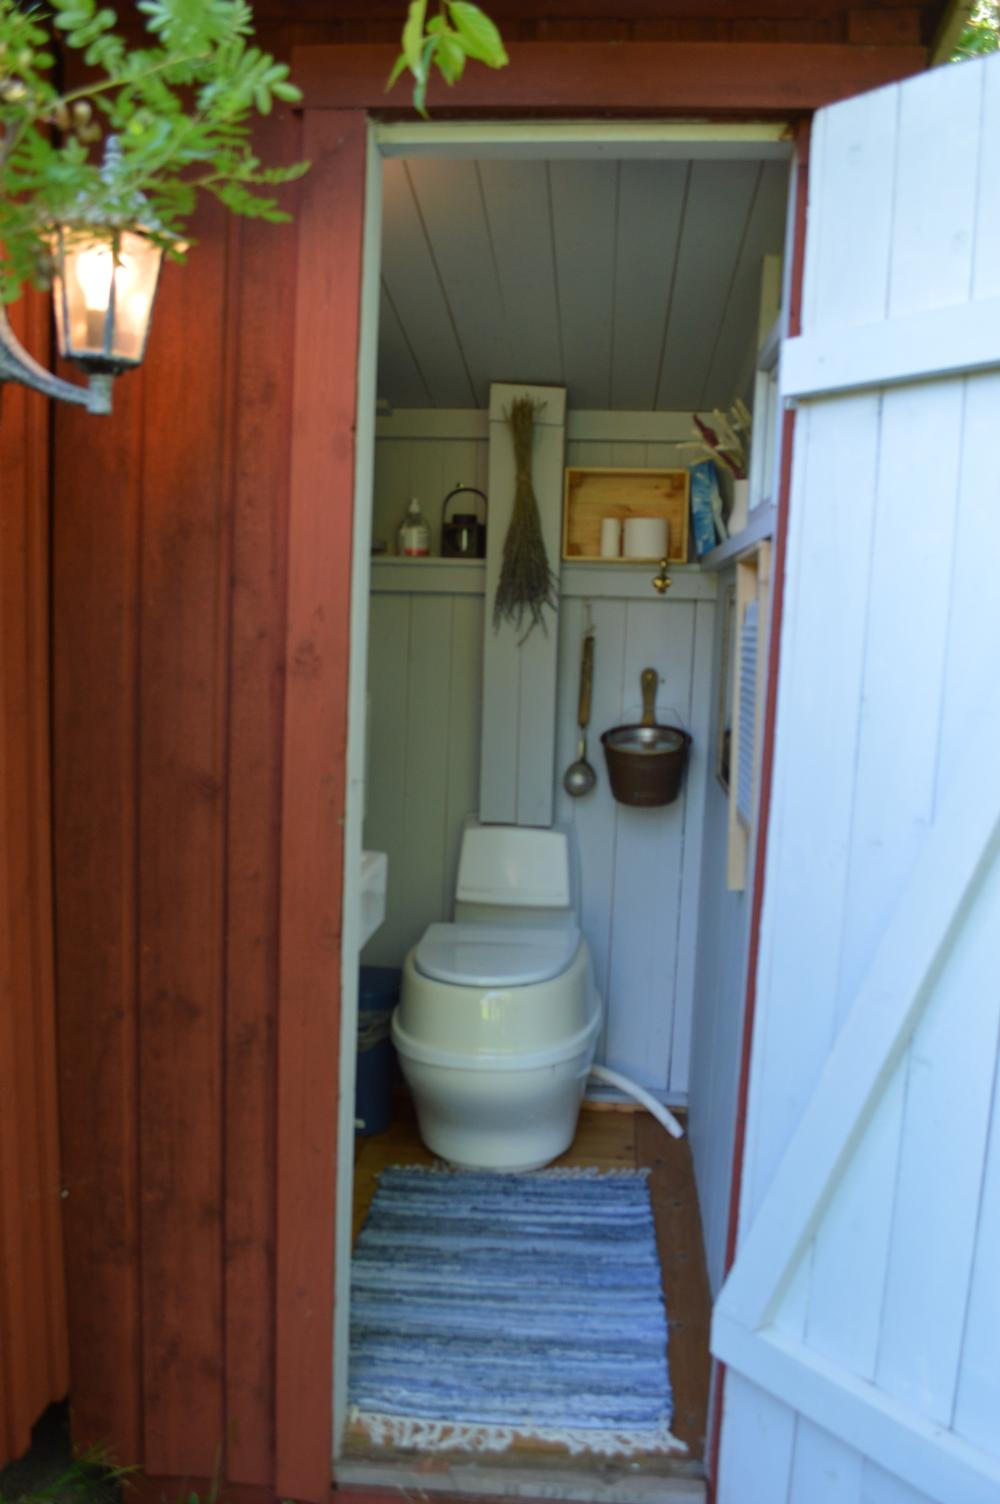 Biotoa separett/ Outdoor privy